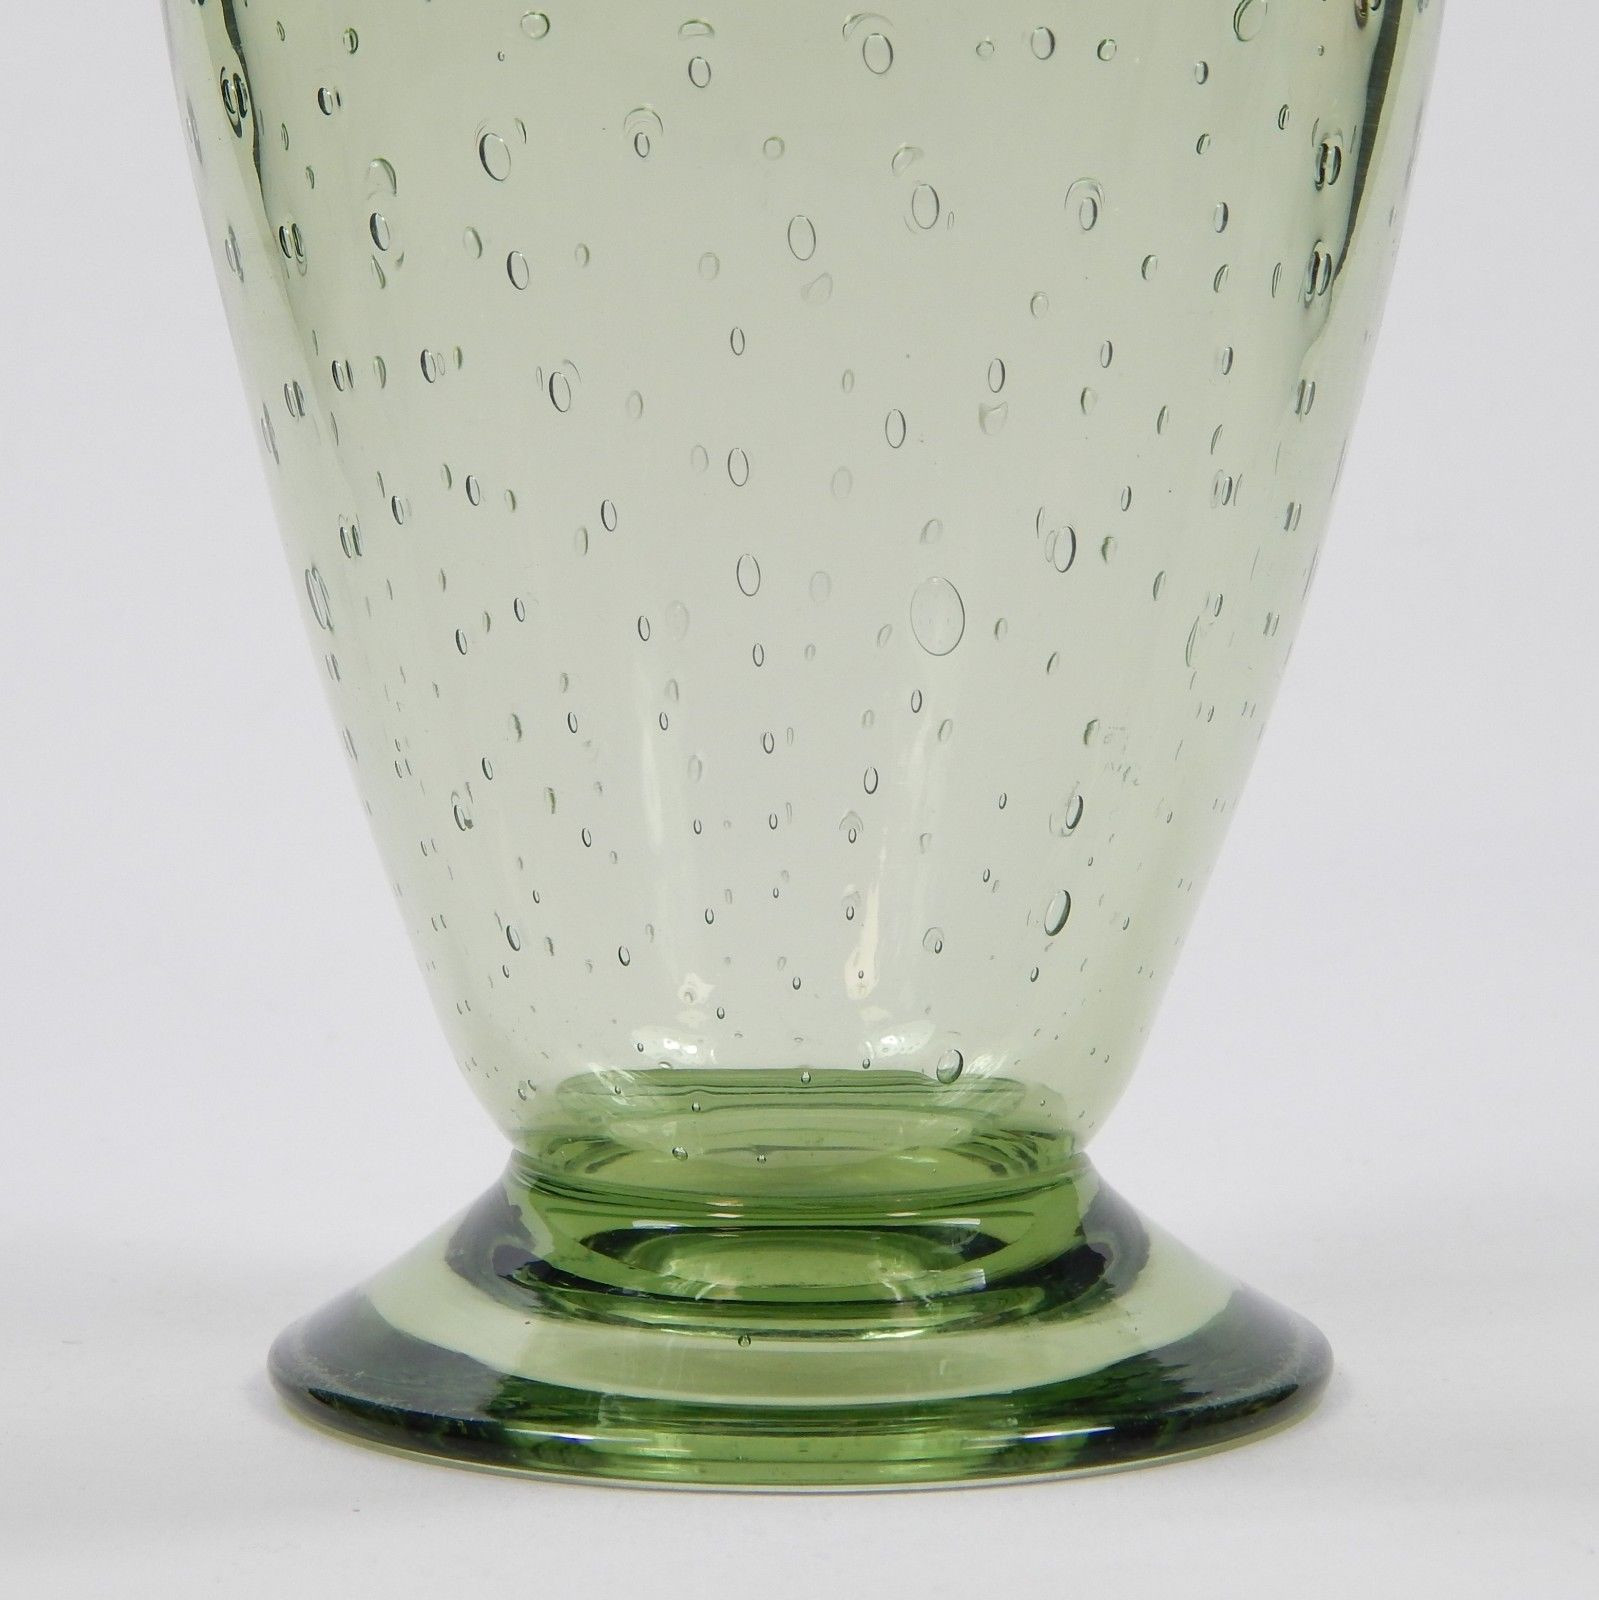 green bubble glass vase of whitefriars sea green encased bubble vase 9356 william wilson with regard to 3 of 8 whitefriars sea green encased bubble vase 9356 william wilson 1950s 4 of 8 whitefriars sea green encased bubble vase